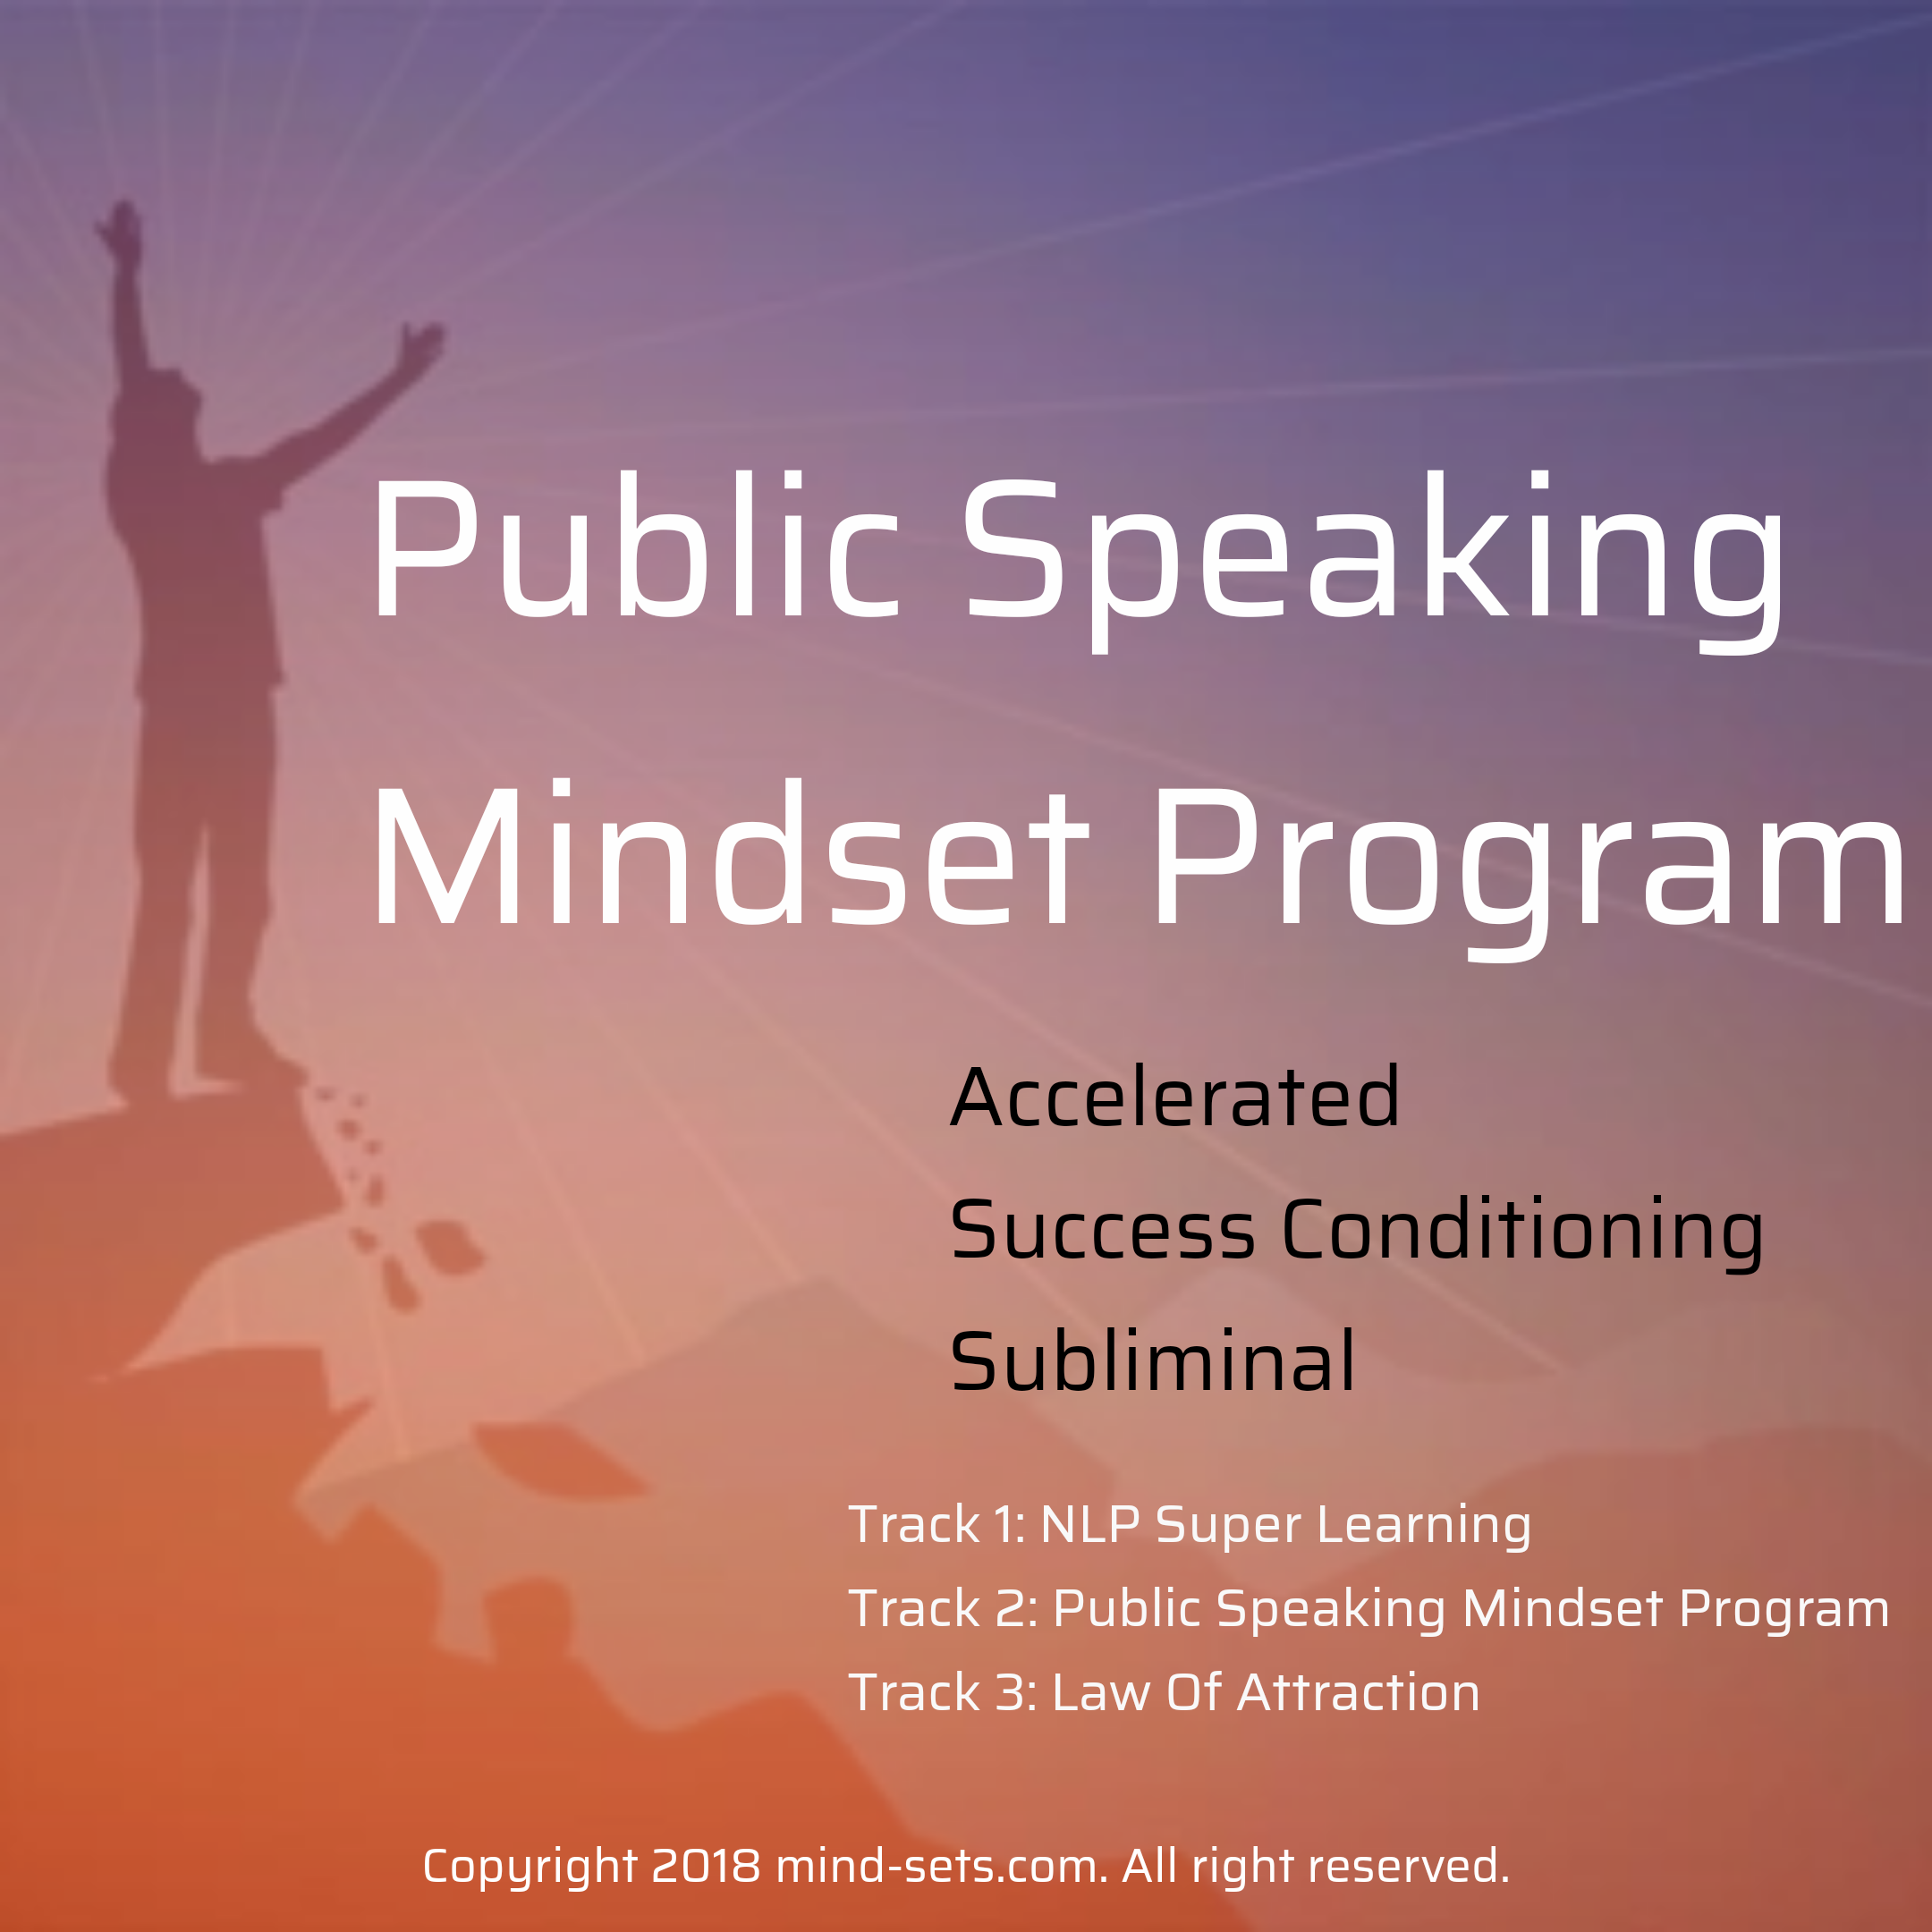 Public Speaking Mindset Program